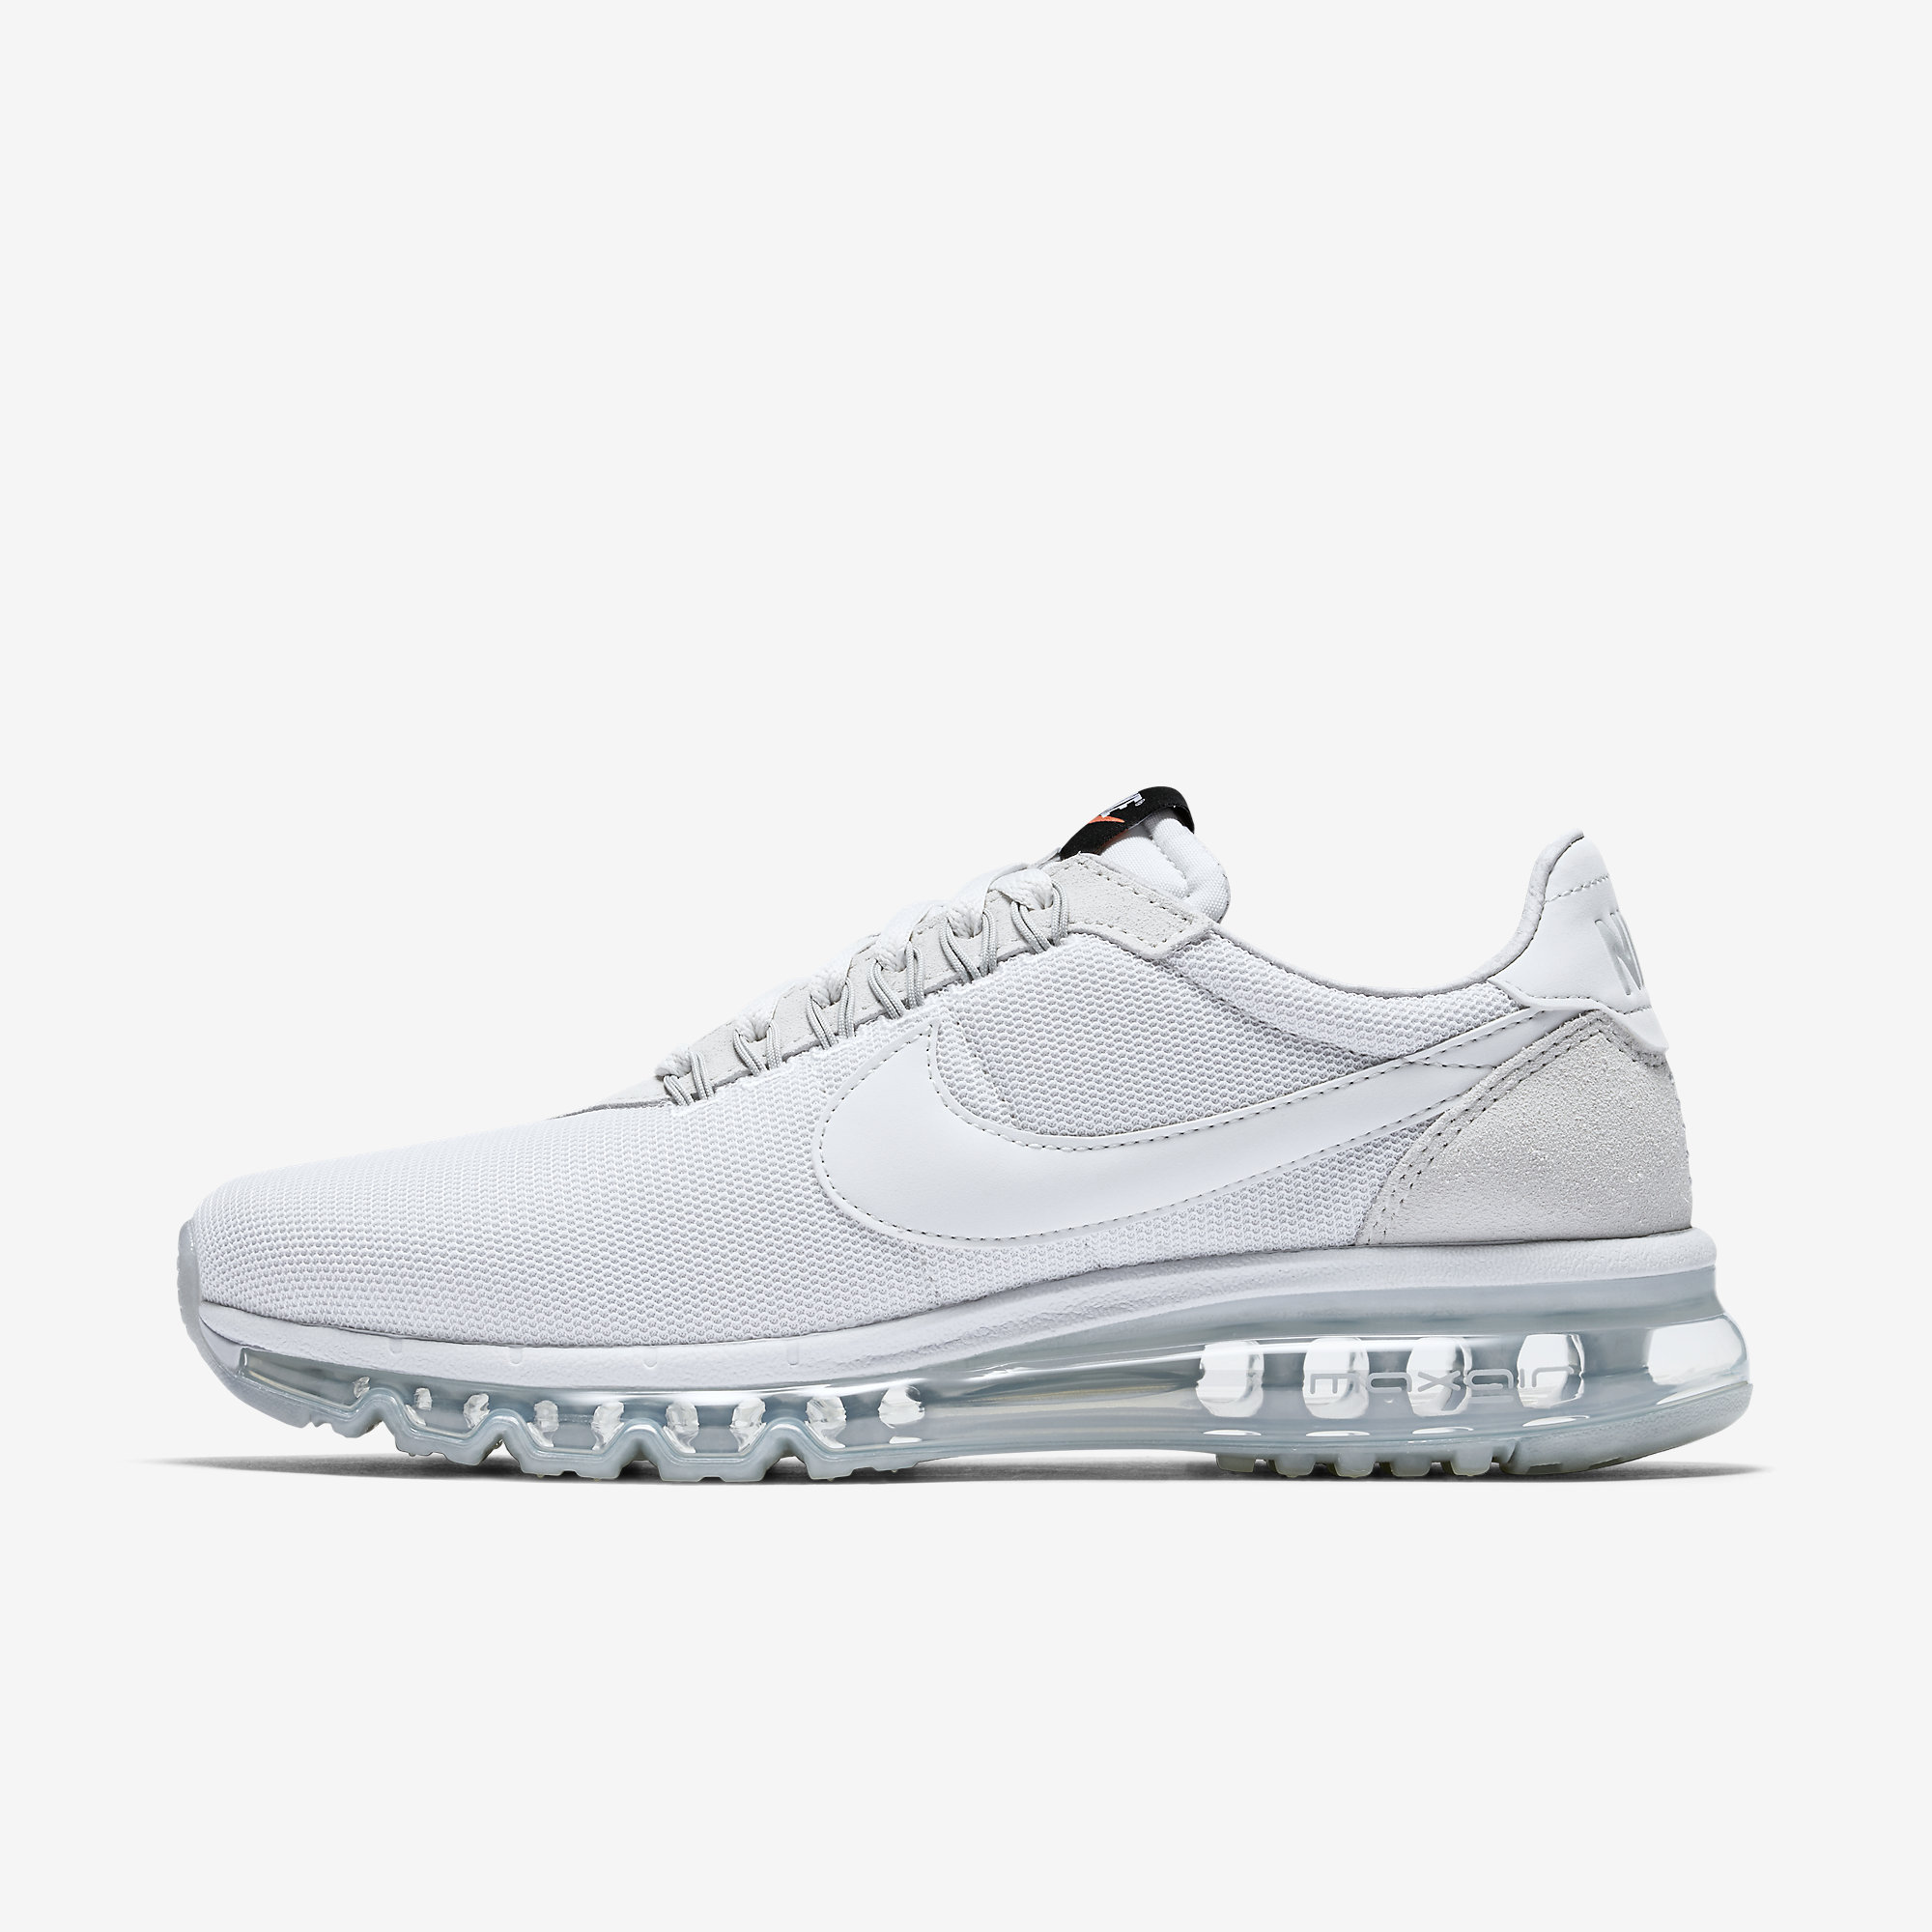 AIR MAX Nike Mens LD-ZERO 848624-004 by Nike